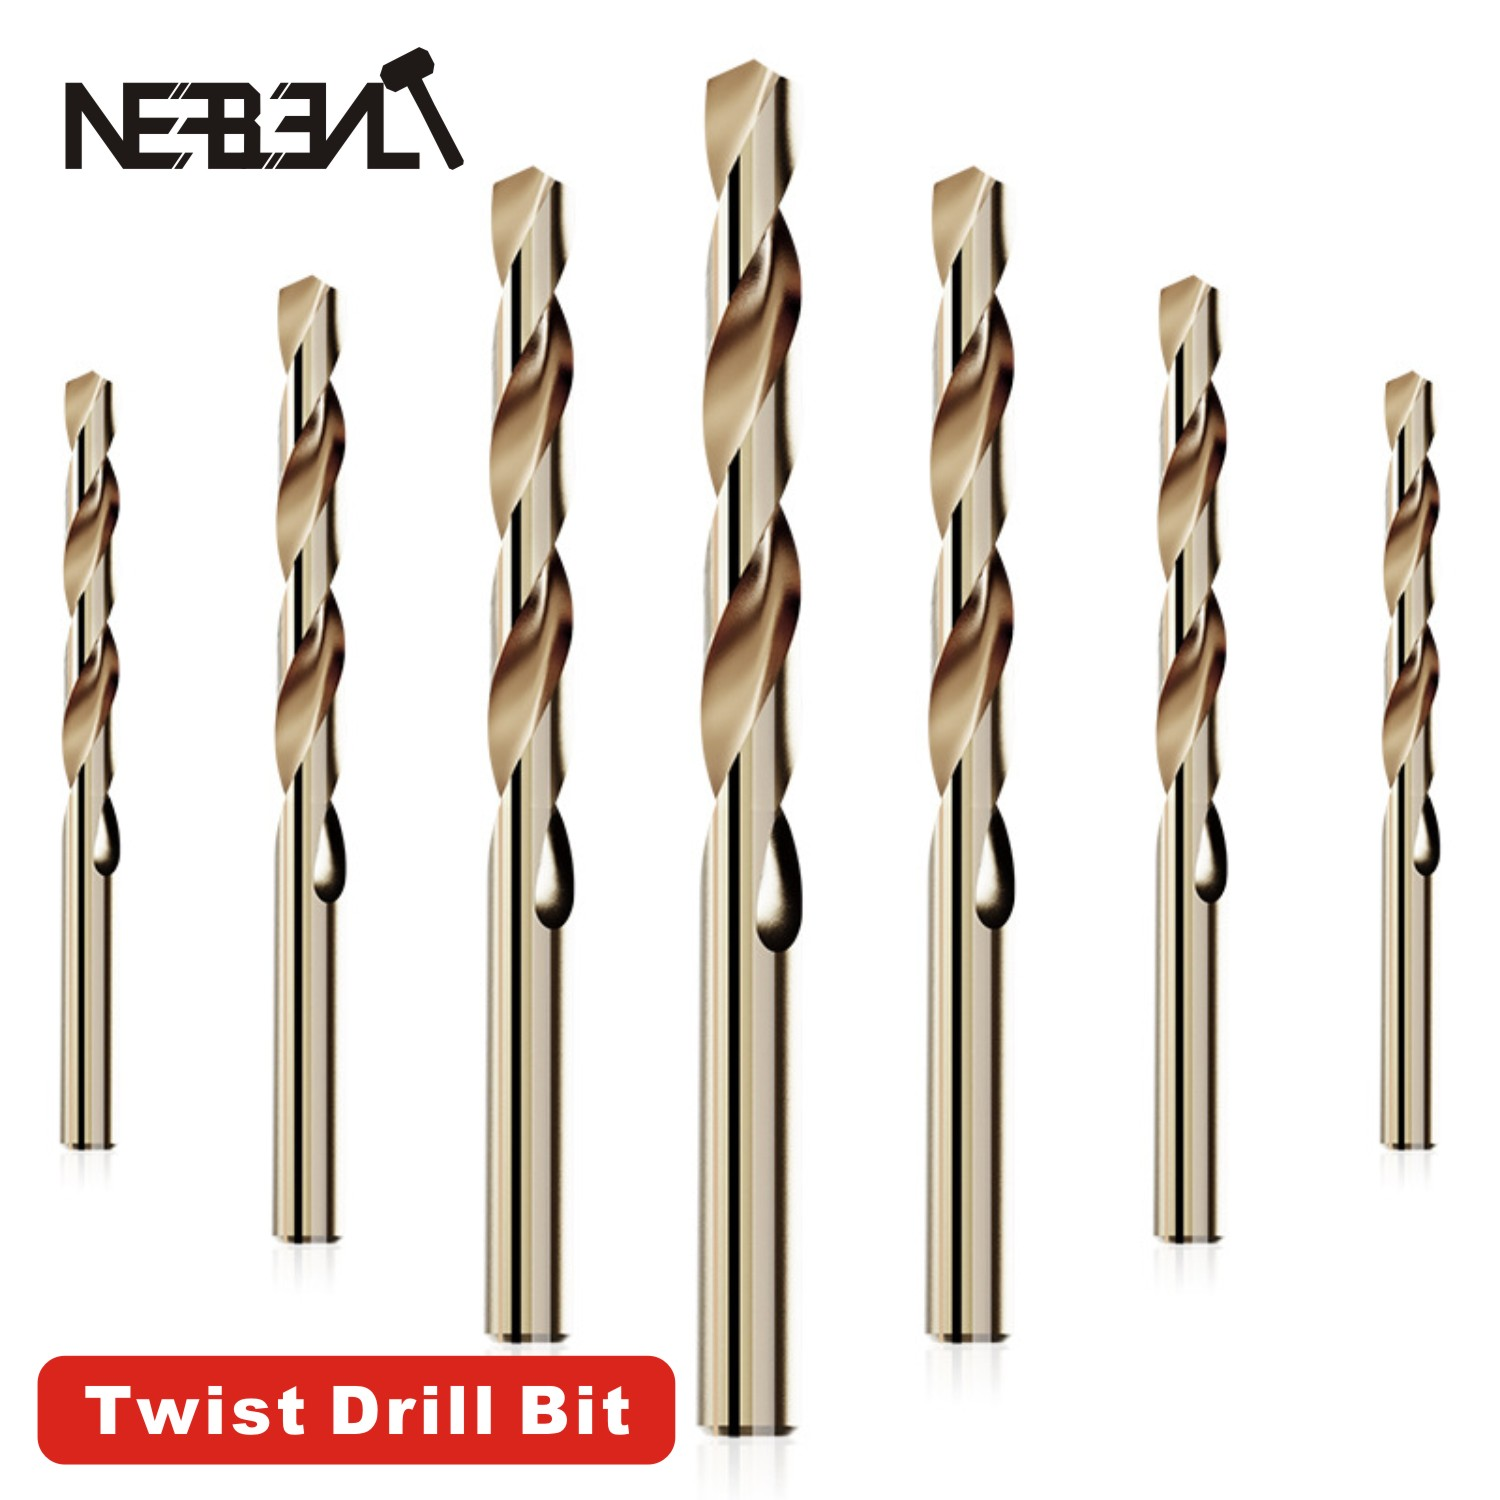 HSS Titanium Coated Twist High Speed Steel Drill Bit Set High Quality Power Drilling Tools For Wood 1/1.5/2/2.5/3/4/5/6/7/8/12mm